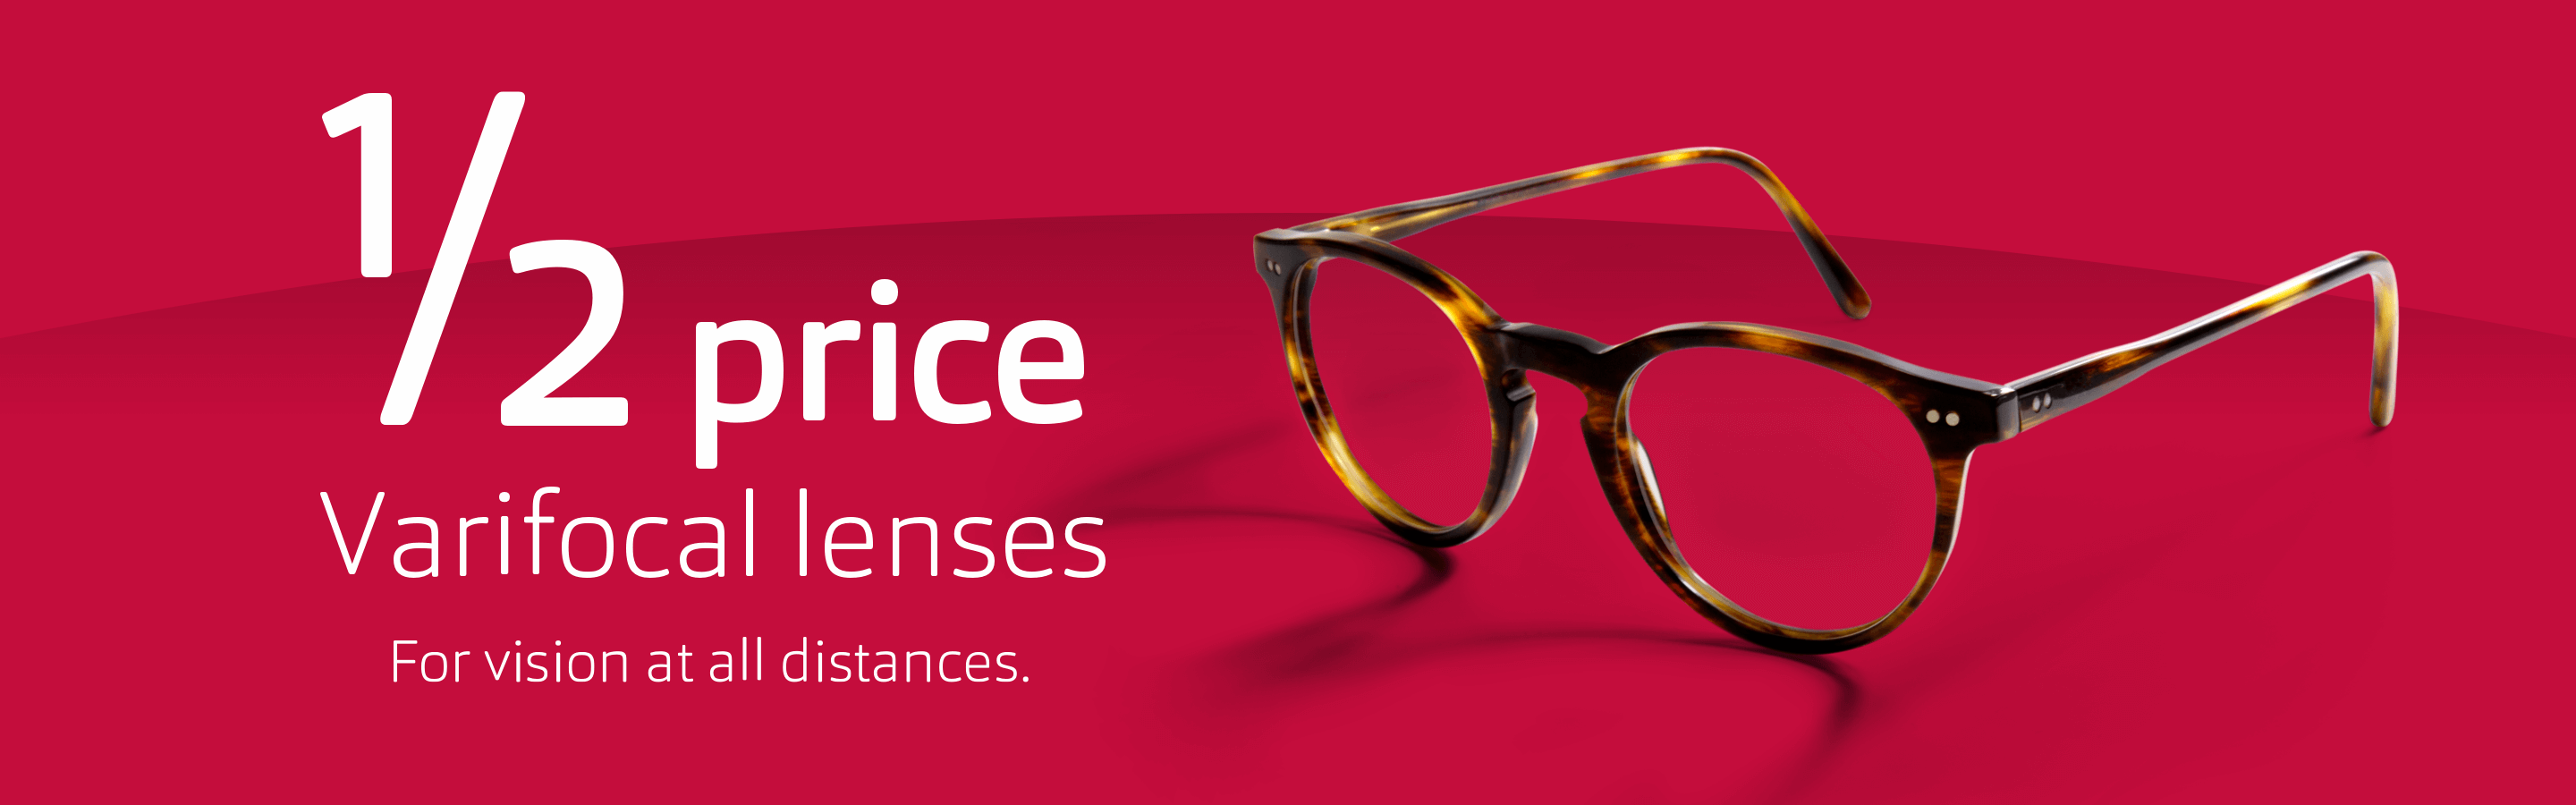 Half price varifocal lenses - Special offer